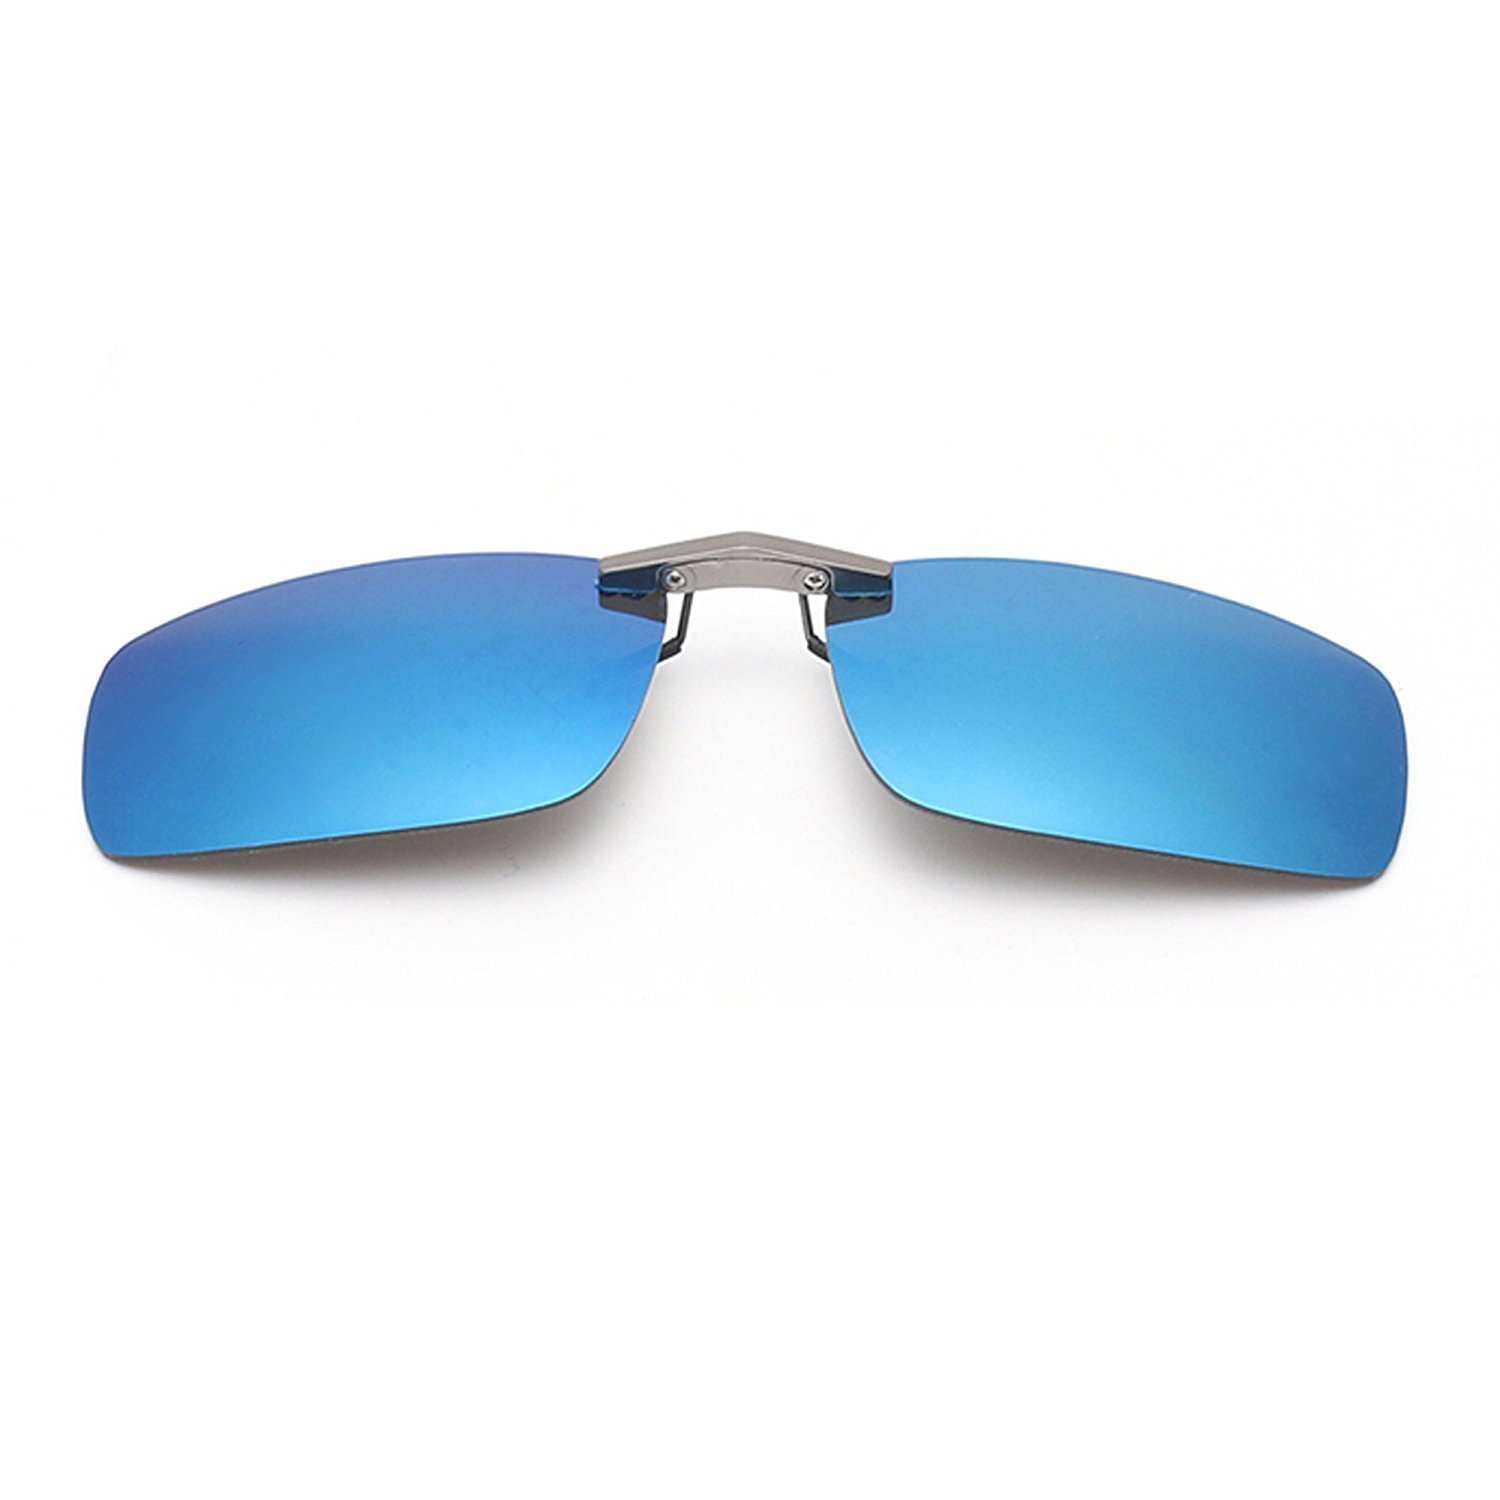 6e02381bba35 Get Quotations · Tacloft Unisex Rectangle 57mm Polarized Clip on Sunglasses  CLIPON2015 Perfect for Driving